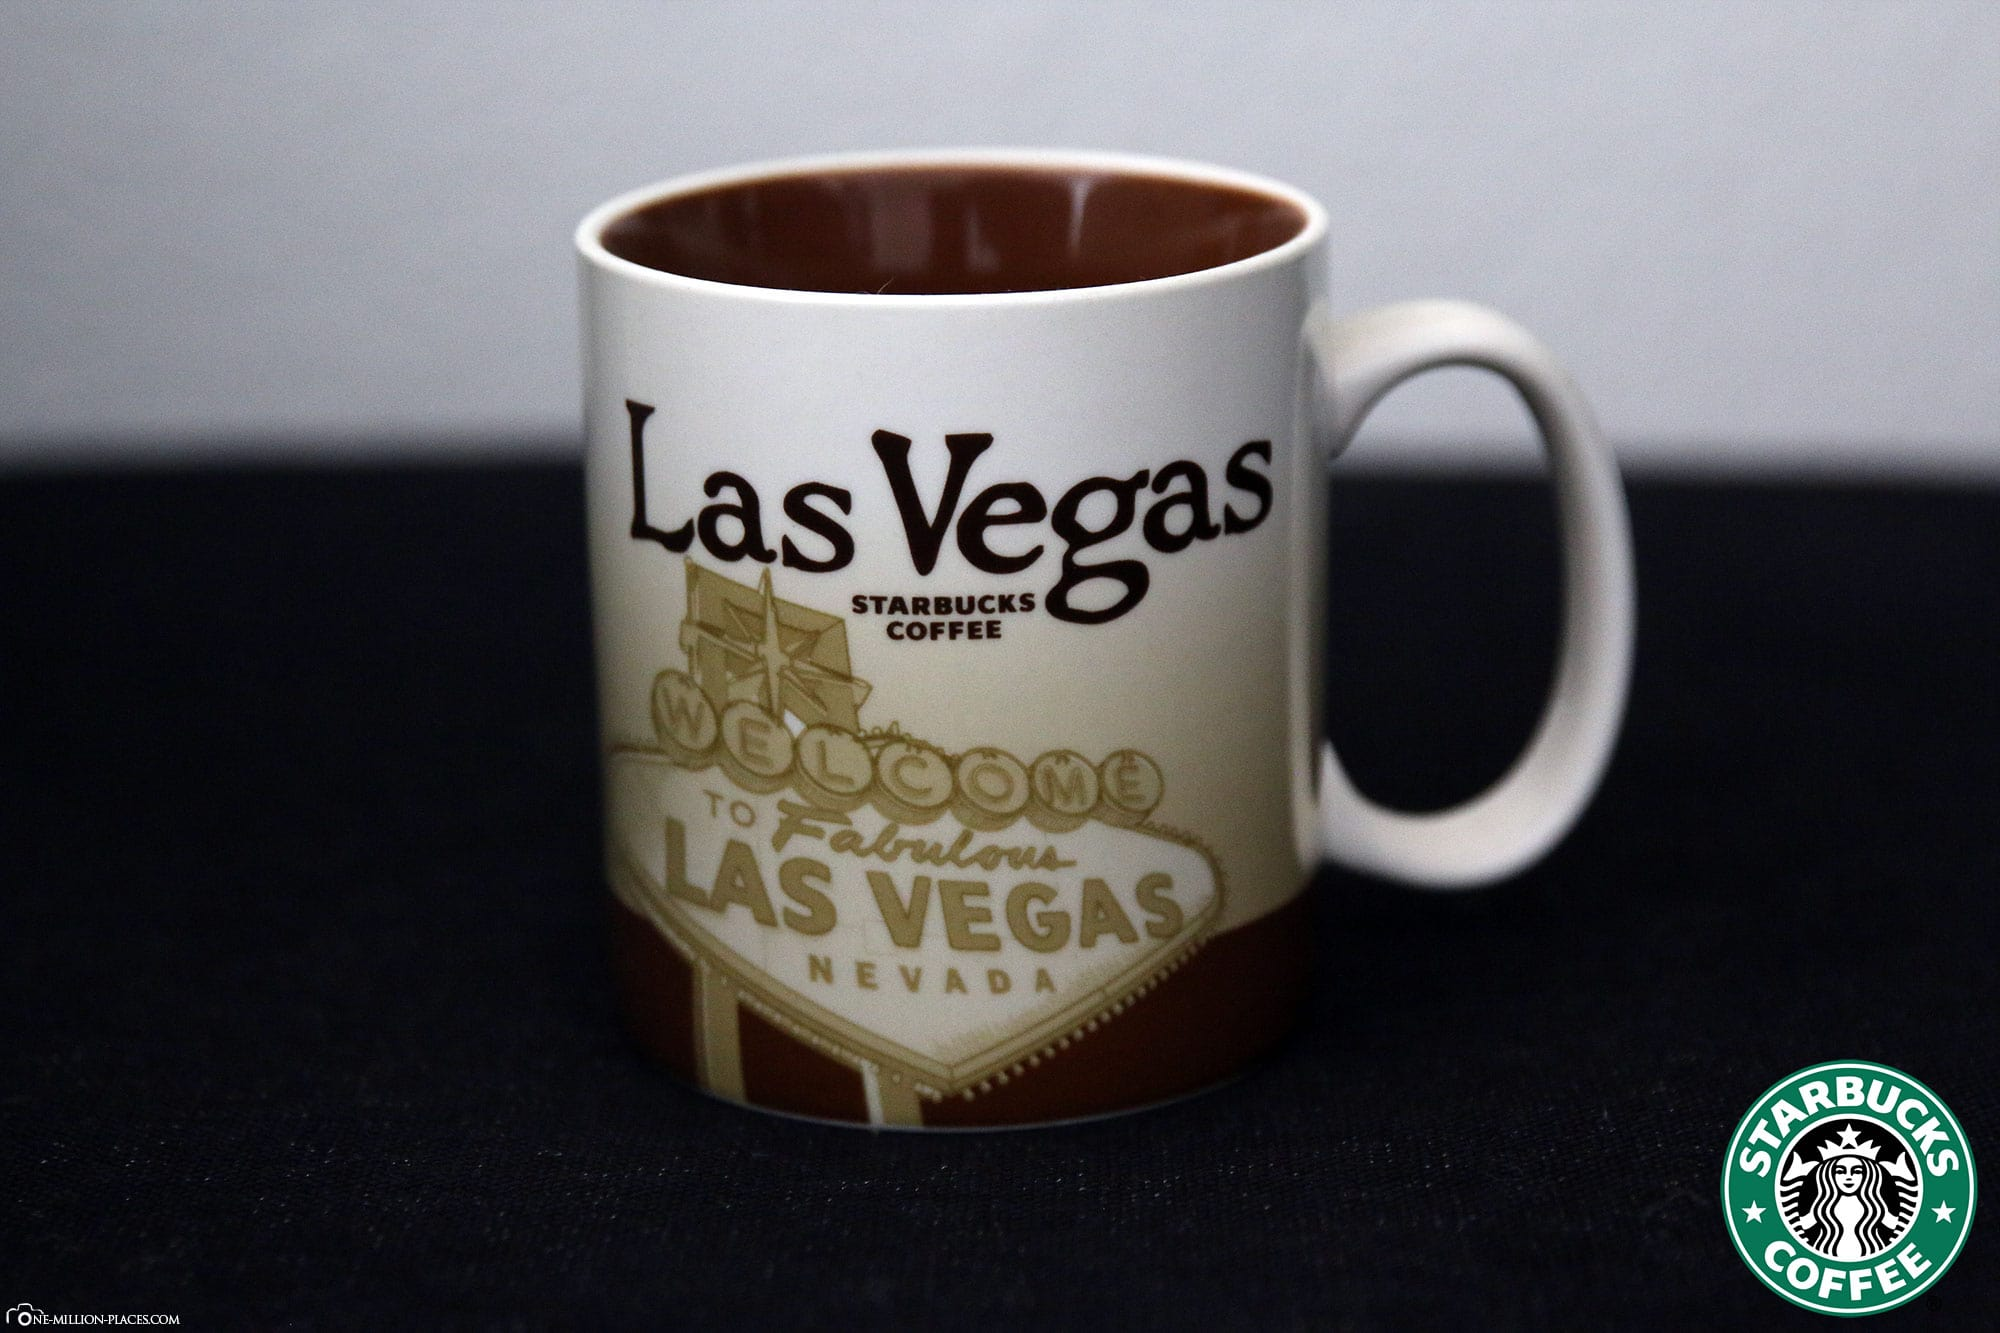 Las Vegas, Starbucks Cup, Global Icon Series, City Mugs, Collection, USA, Travelreport